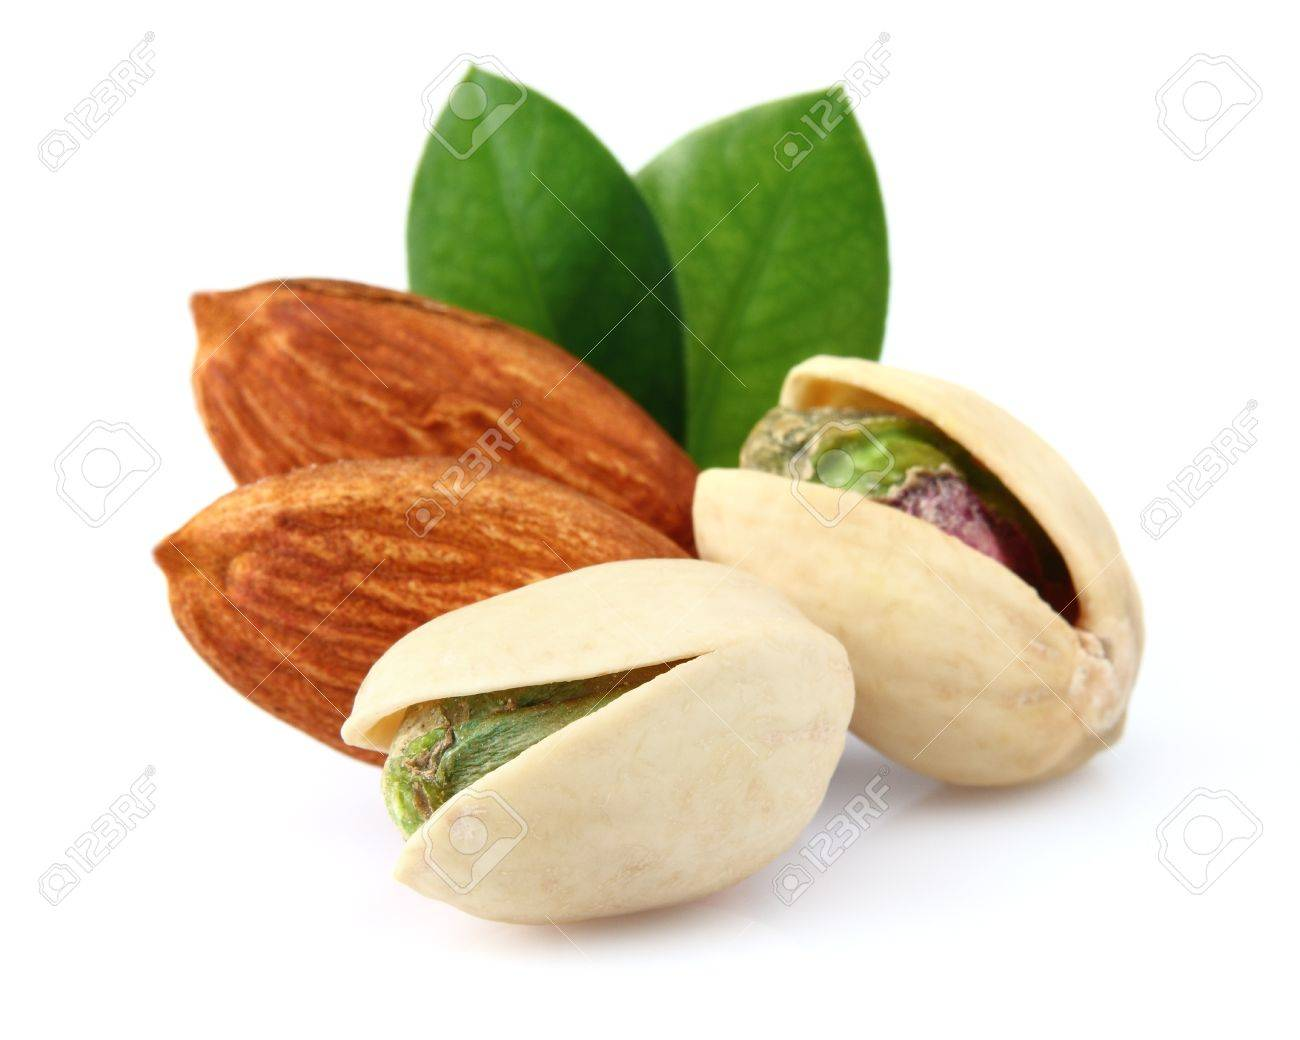 Pistachio and almonds with leaves Stock Photo - 12882233